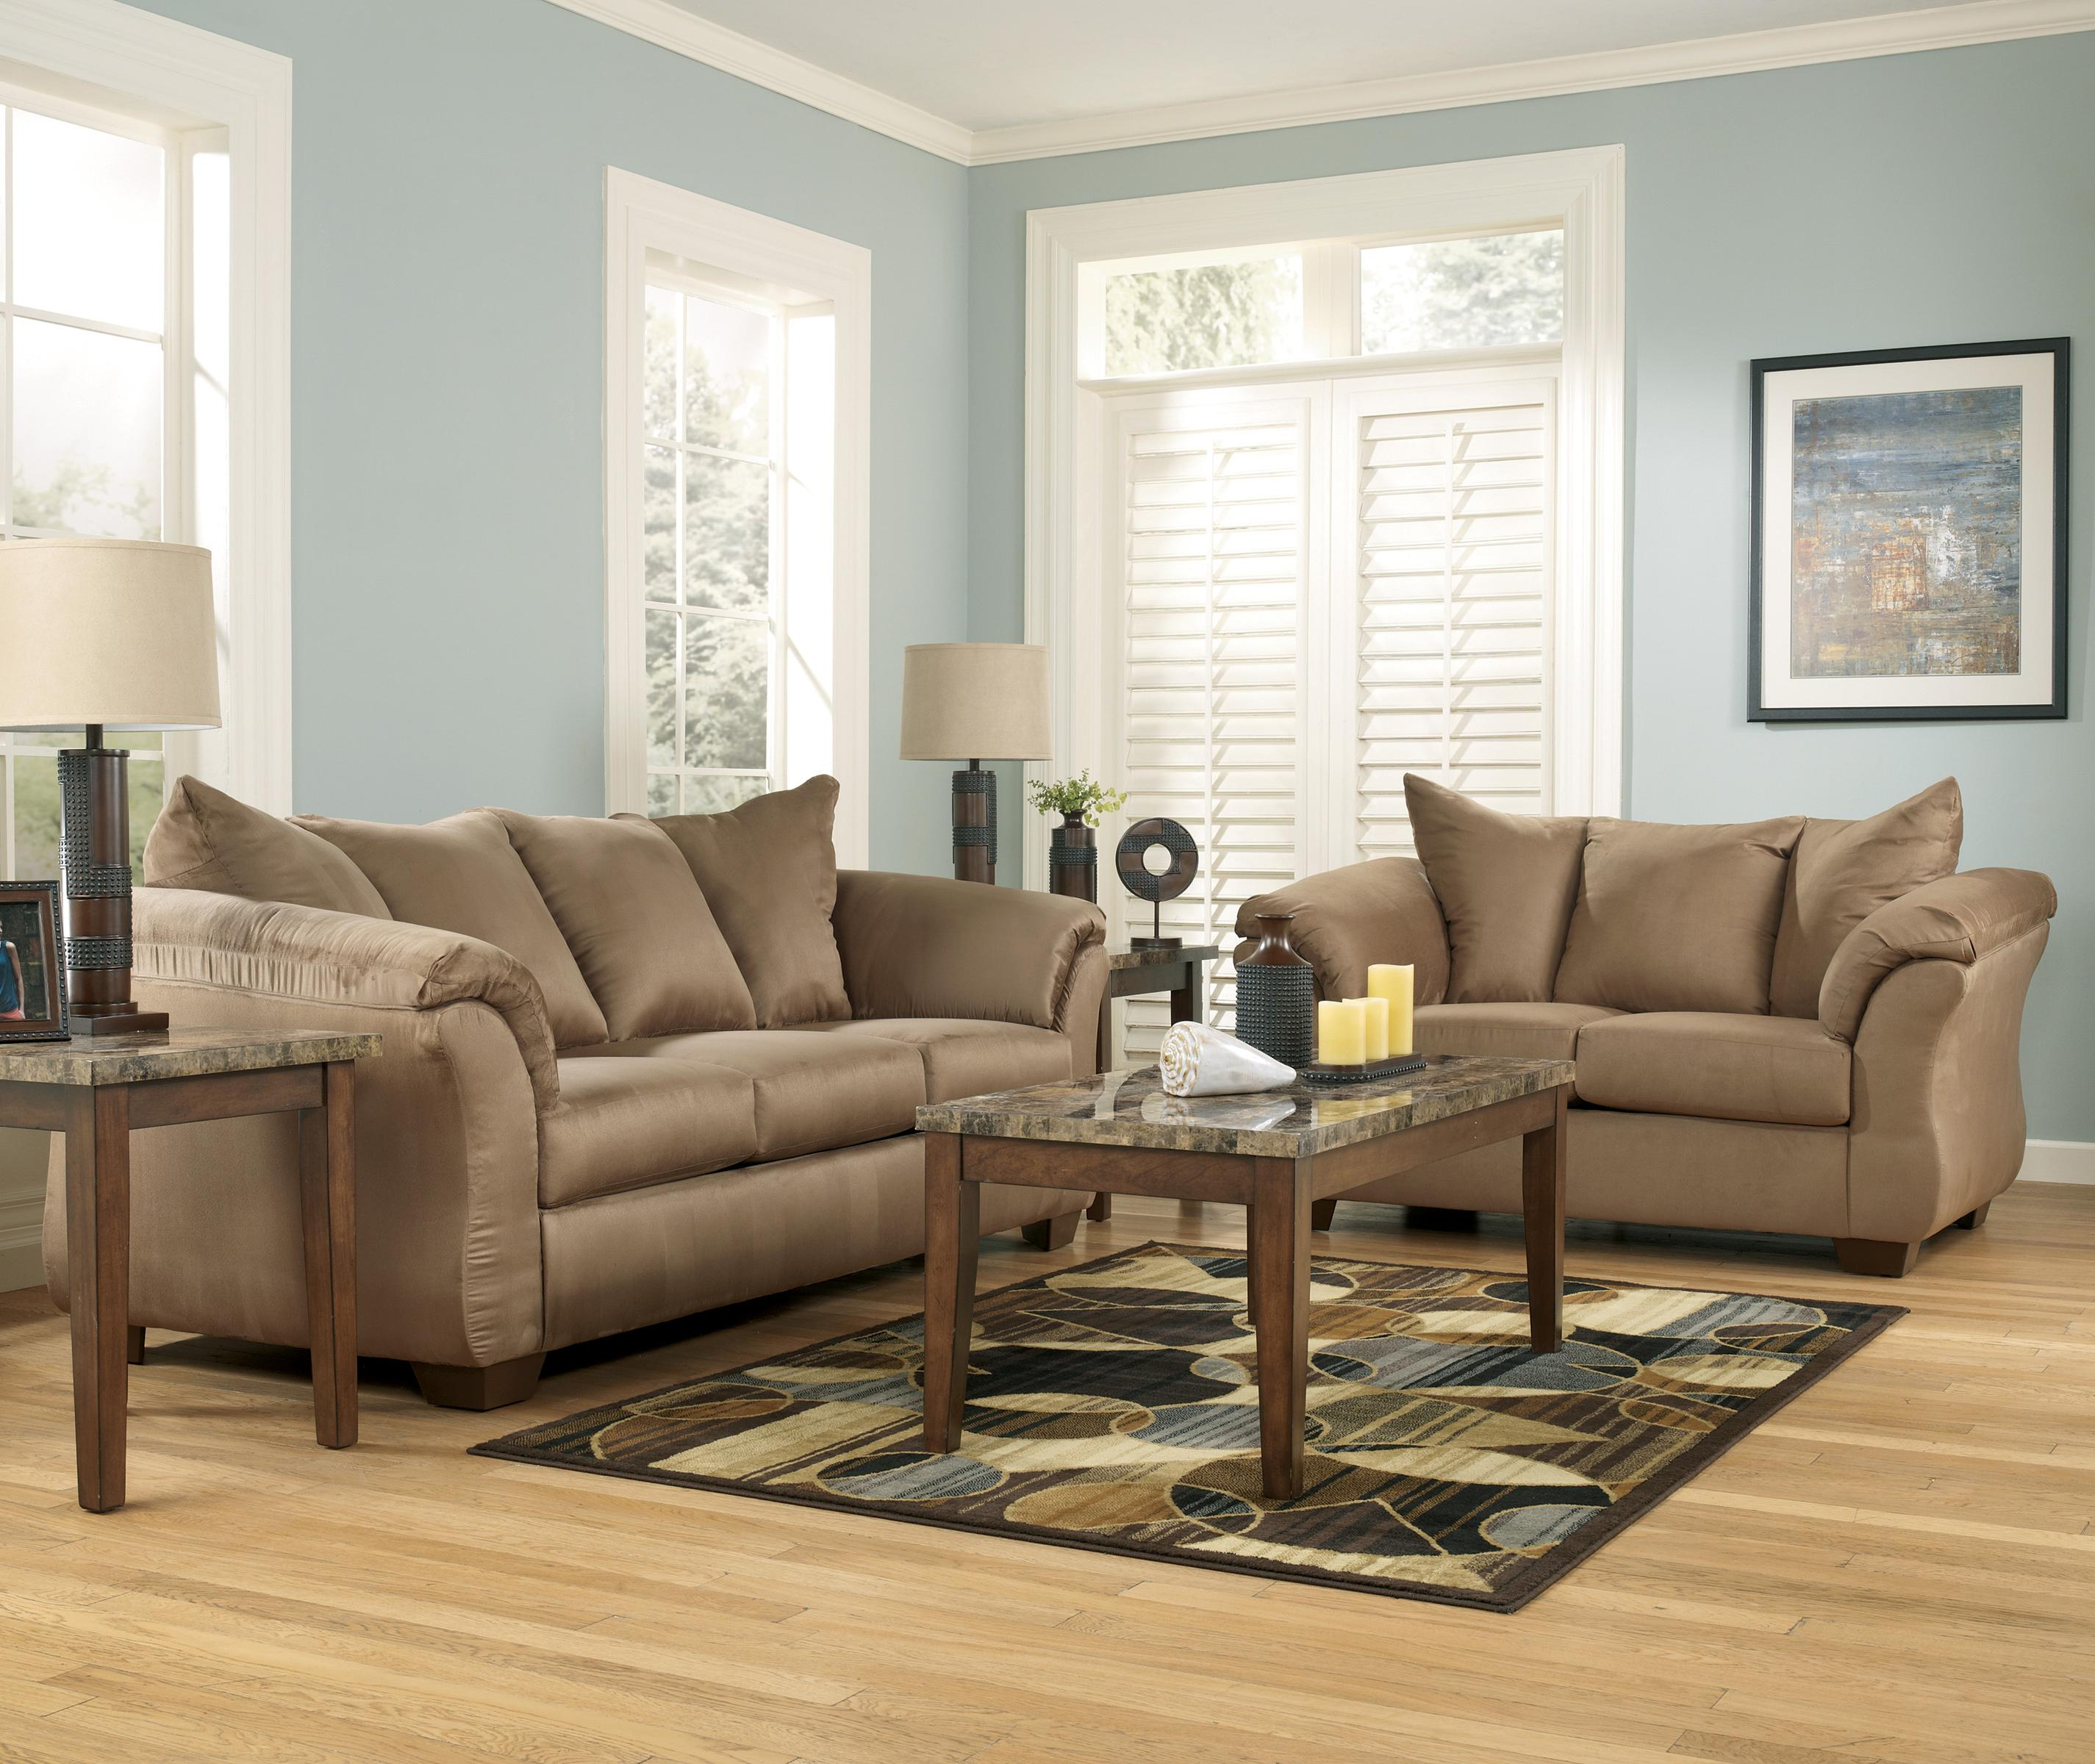 Signature Design By Ashley Darcy Mocha Contemporary Sectional : ashley darcy sectional - Sectionals, Sofas & Couches